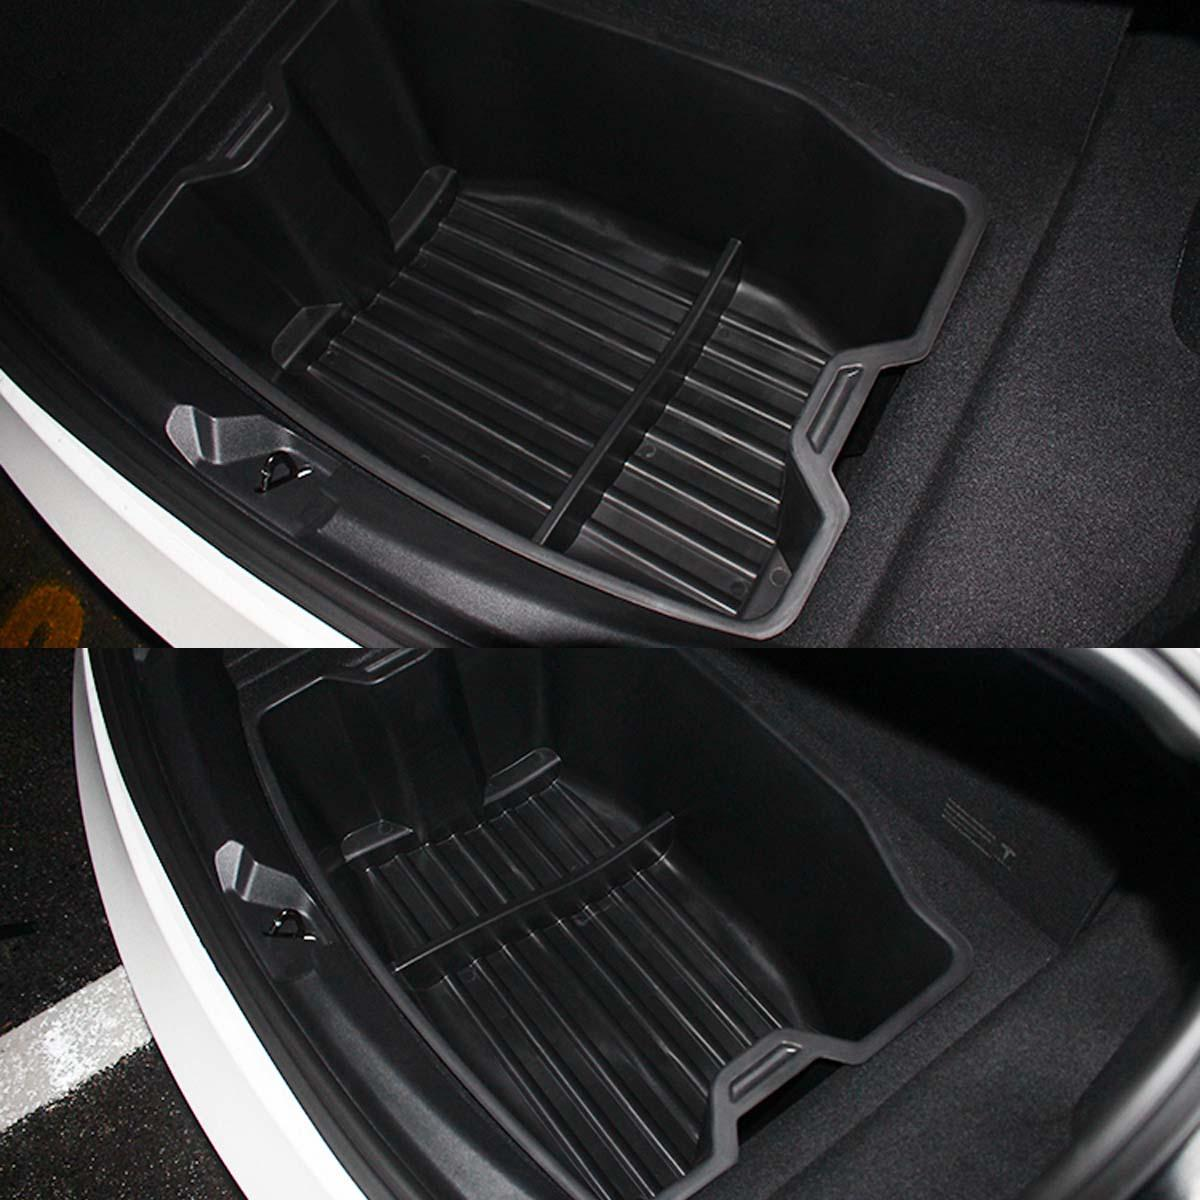 Detachable Car Seat Crevice Gap Storage Box Organizer Leather Cup Holder Double Sided Installation - 4